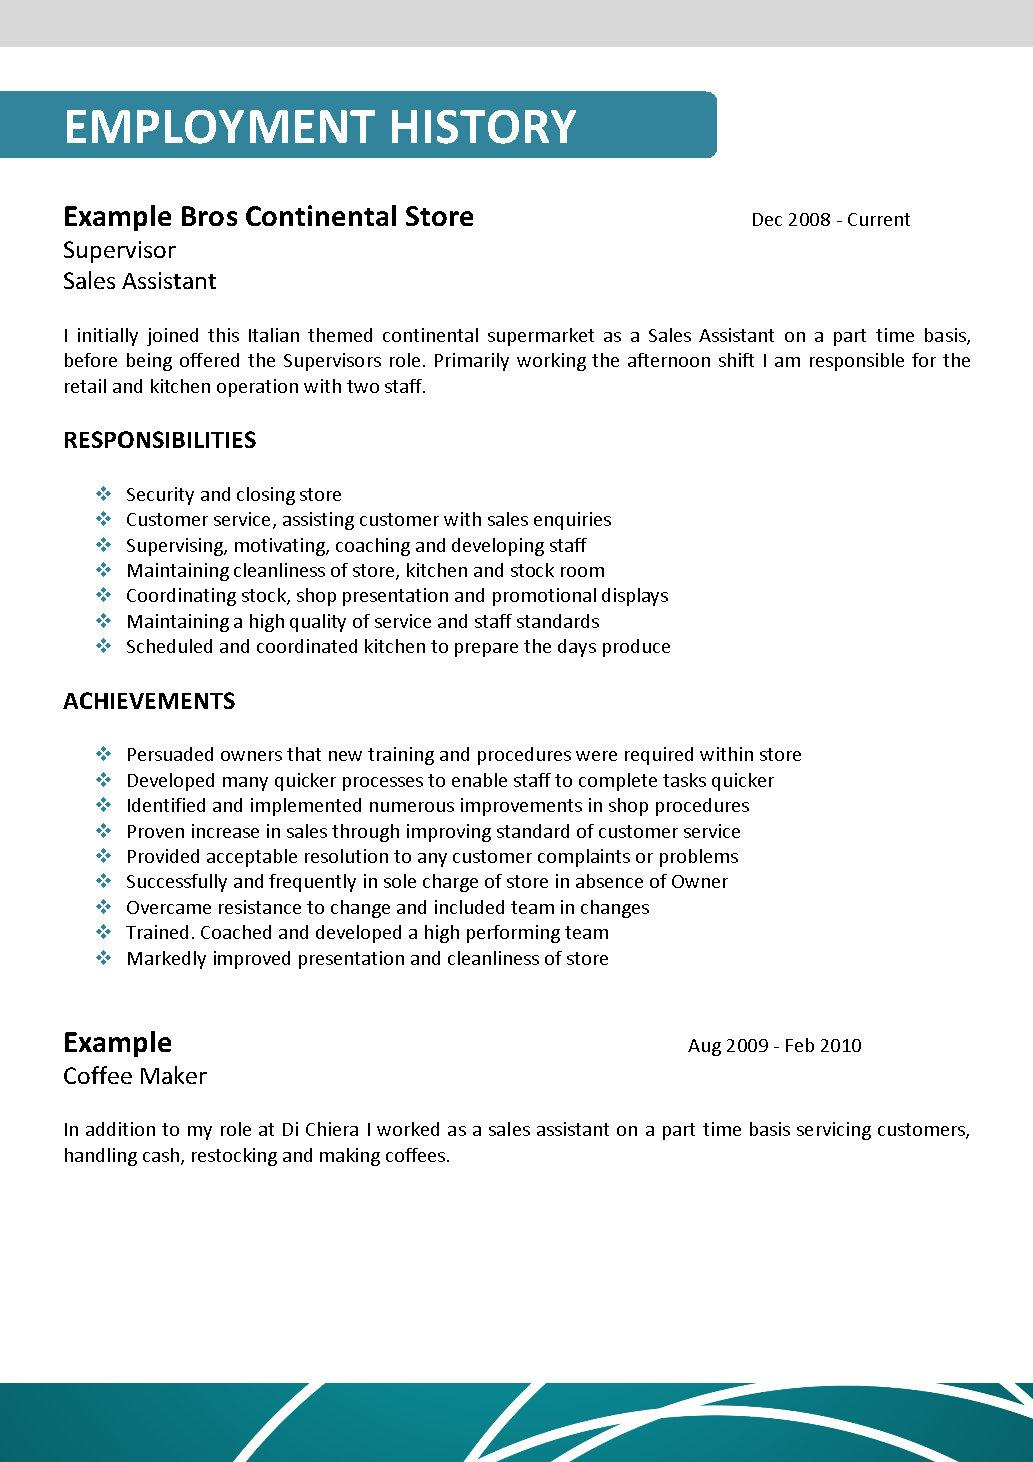 We can help with professional resume writing